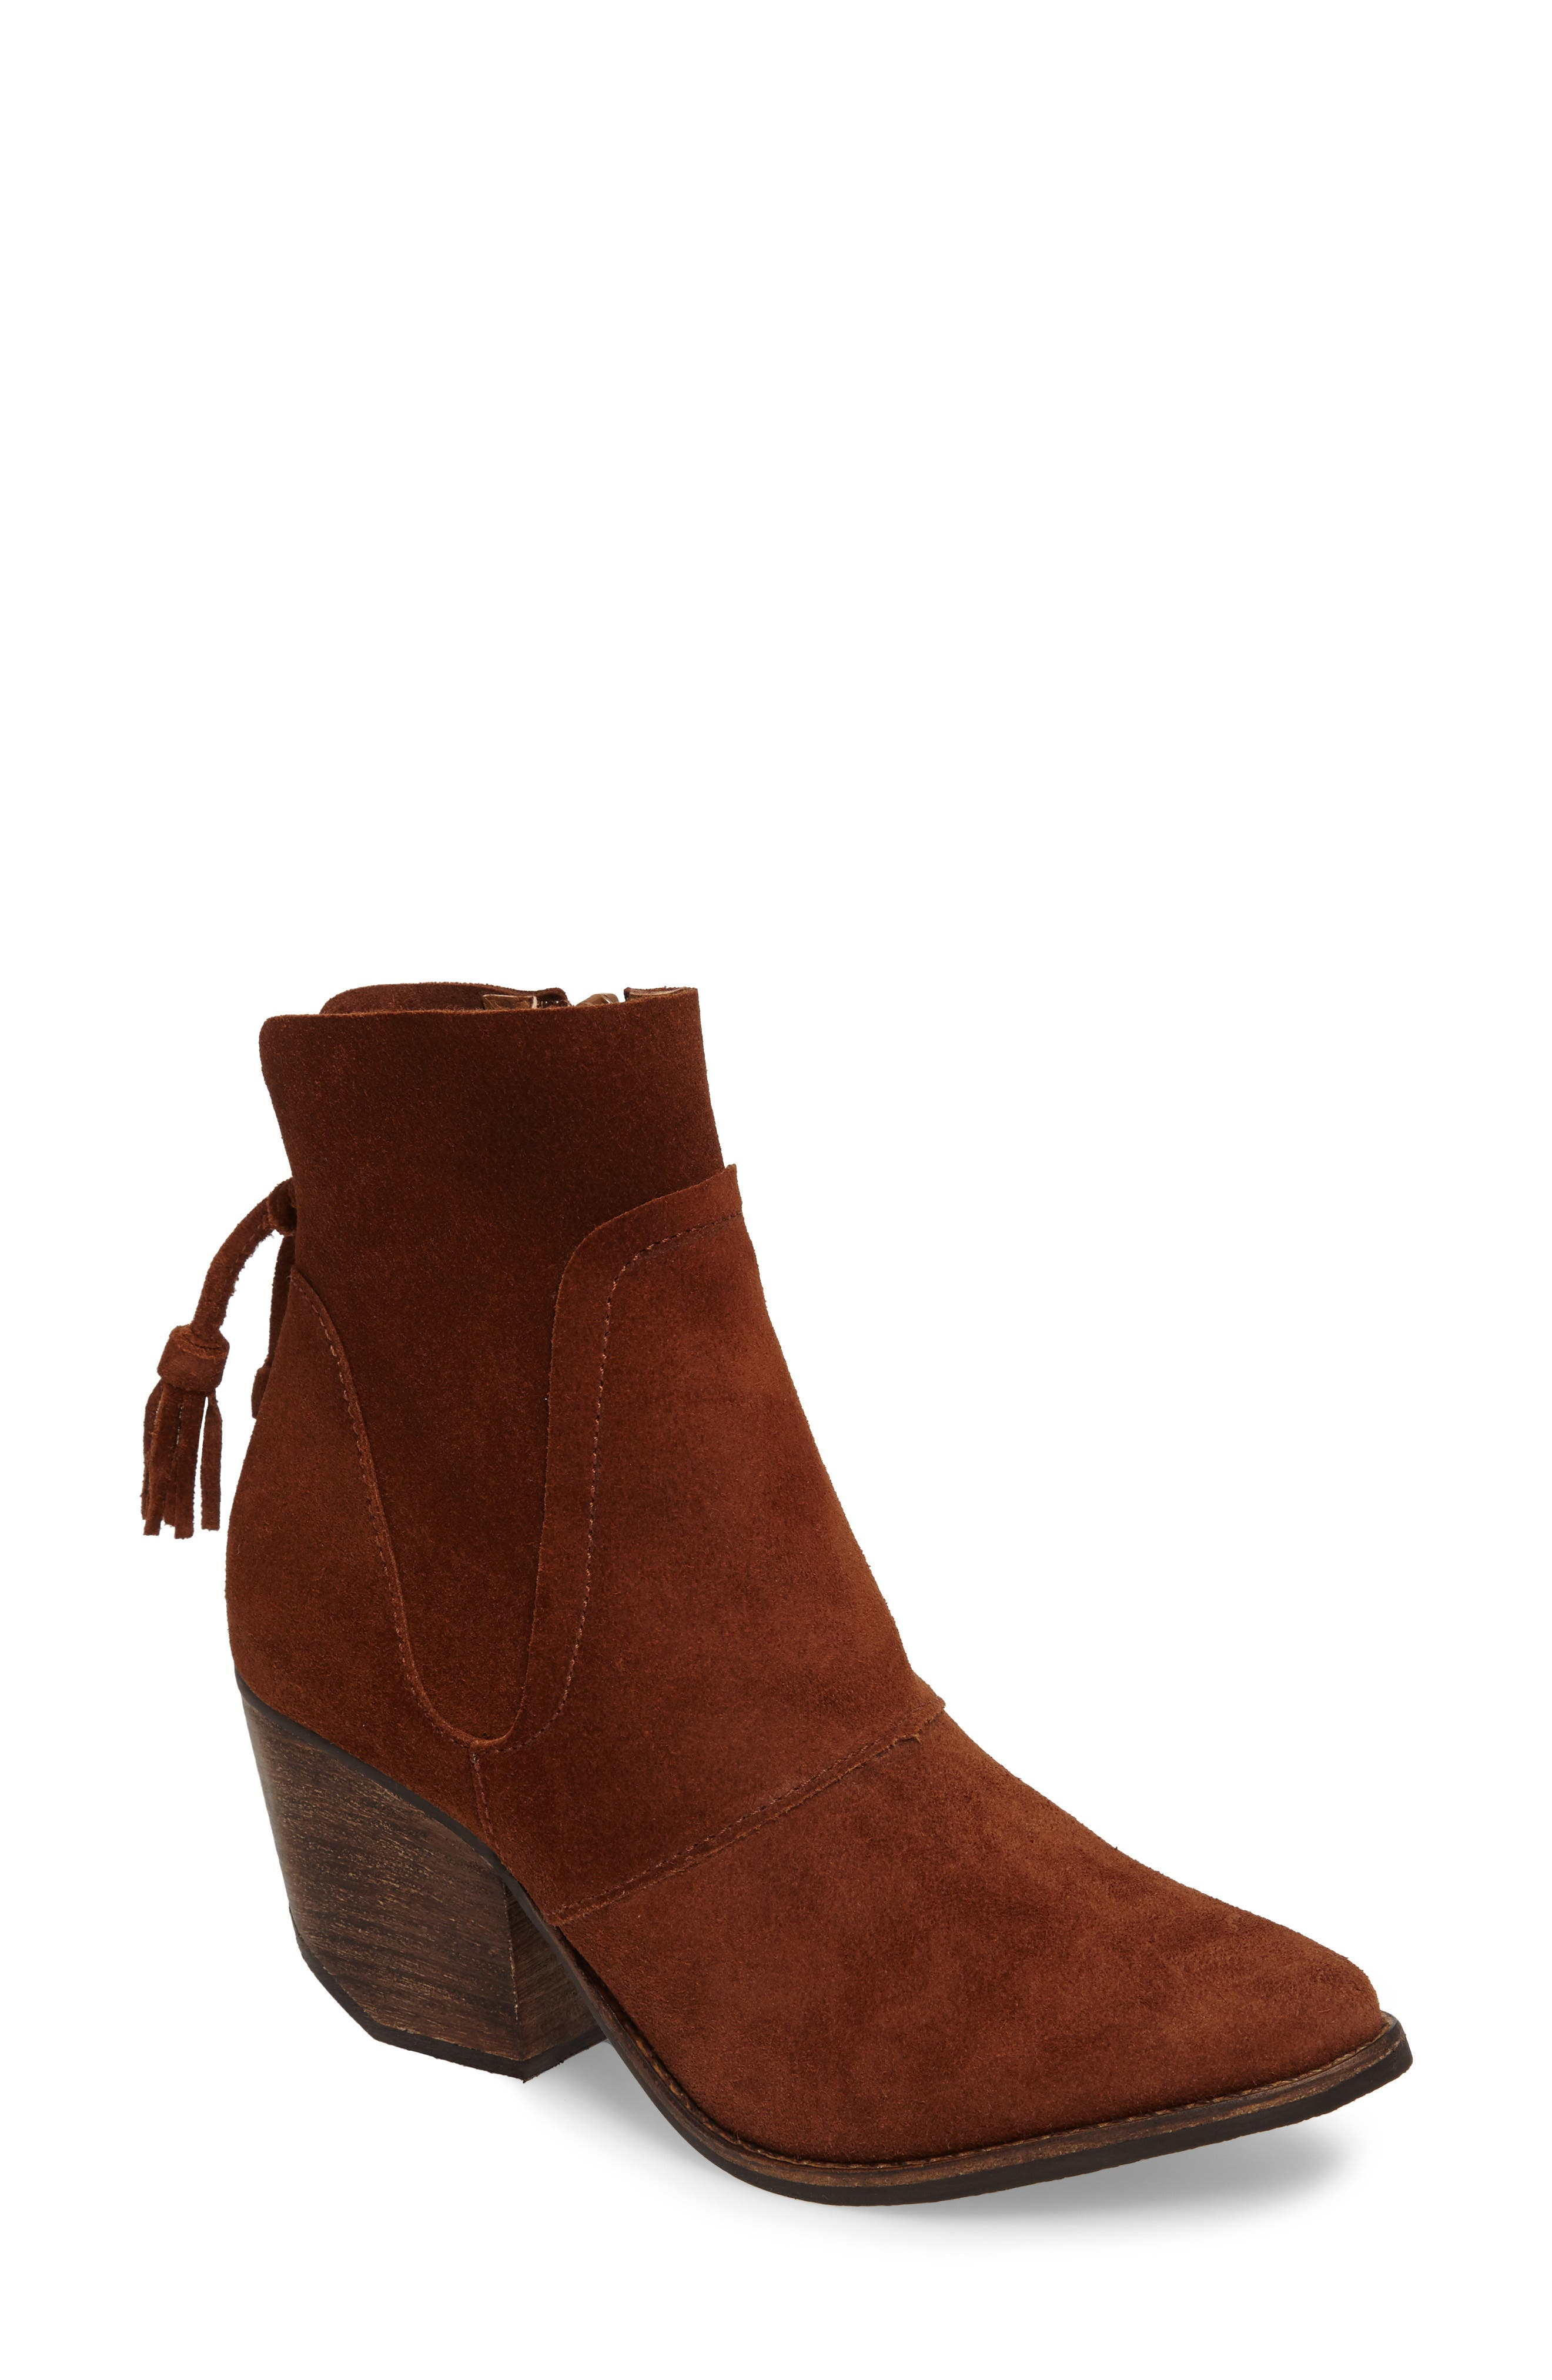 Laney Notched Heel Bootie,                             Main thumbnail 3, color,